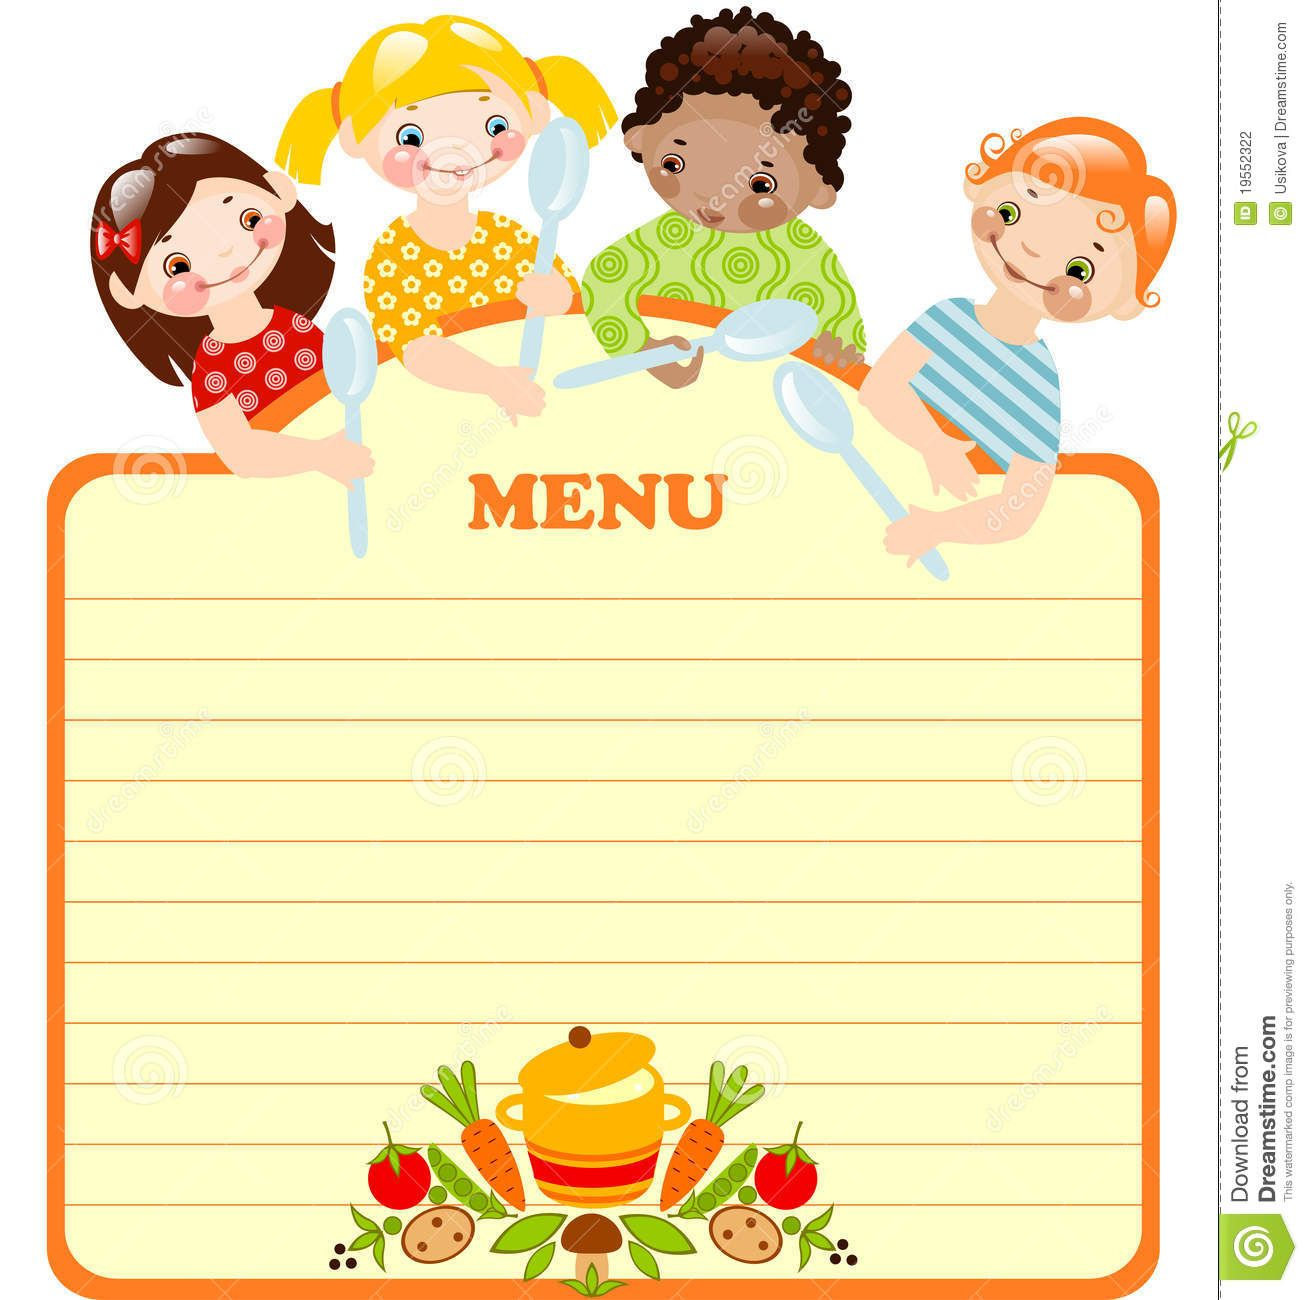 free printable menu templates for kids - blank kids menu template invitation templates